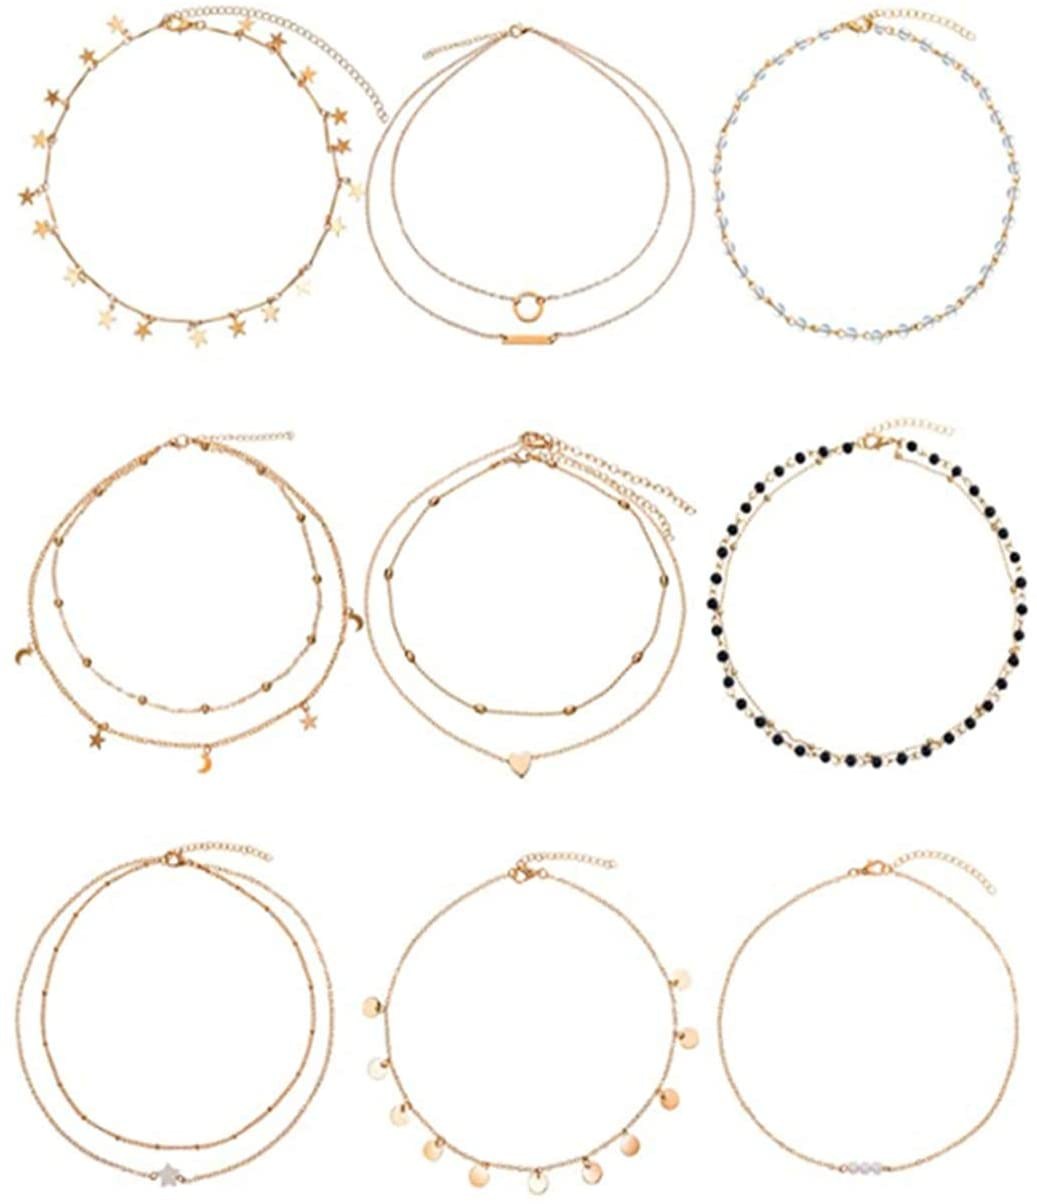 SEVENHOPE 9PCS Women's Jewerly Set - Multiple Styles Necklace - Simple Pendant Choker Dainty Chain Short Necklace,Women Girlfriend Daughter Gift